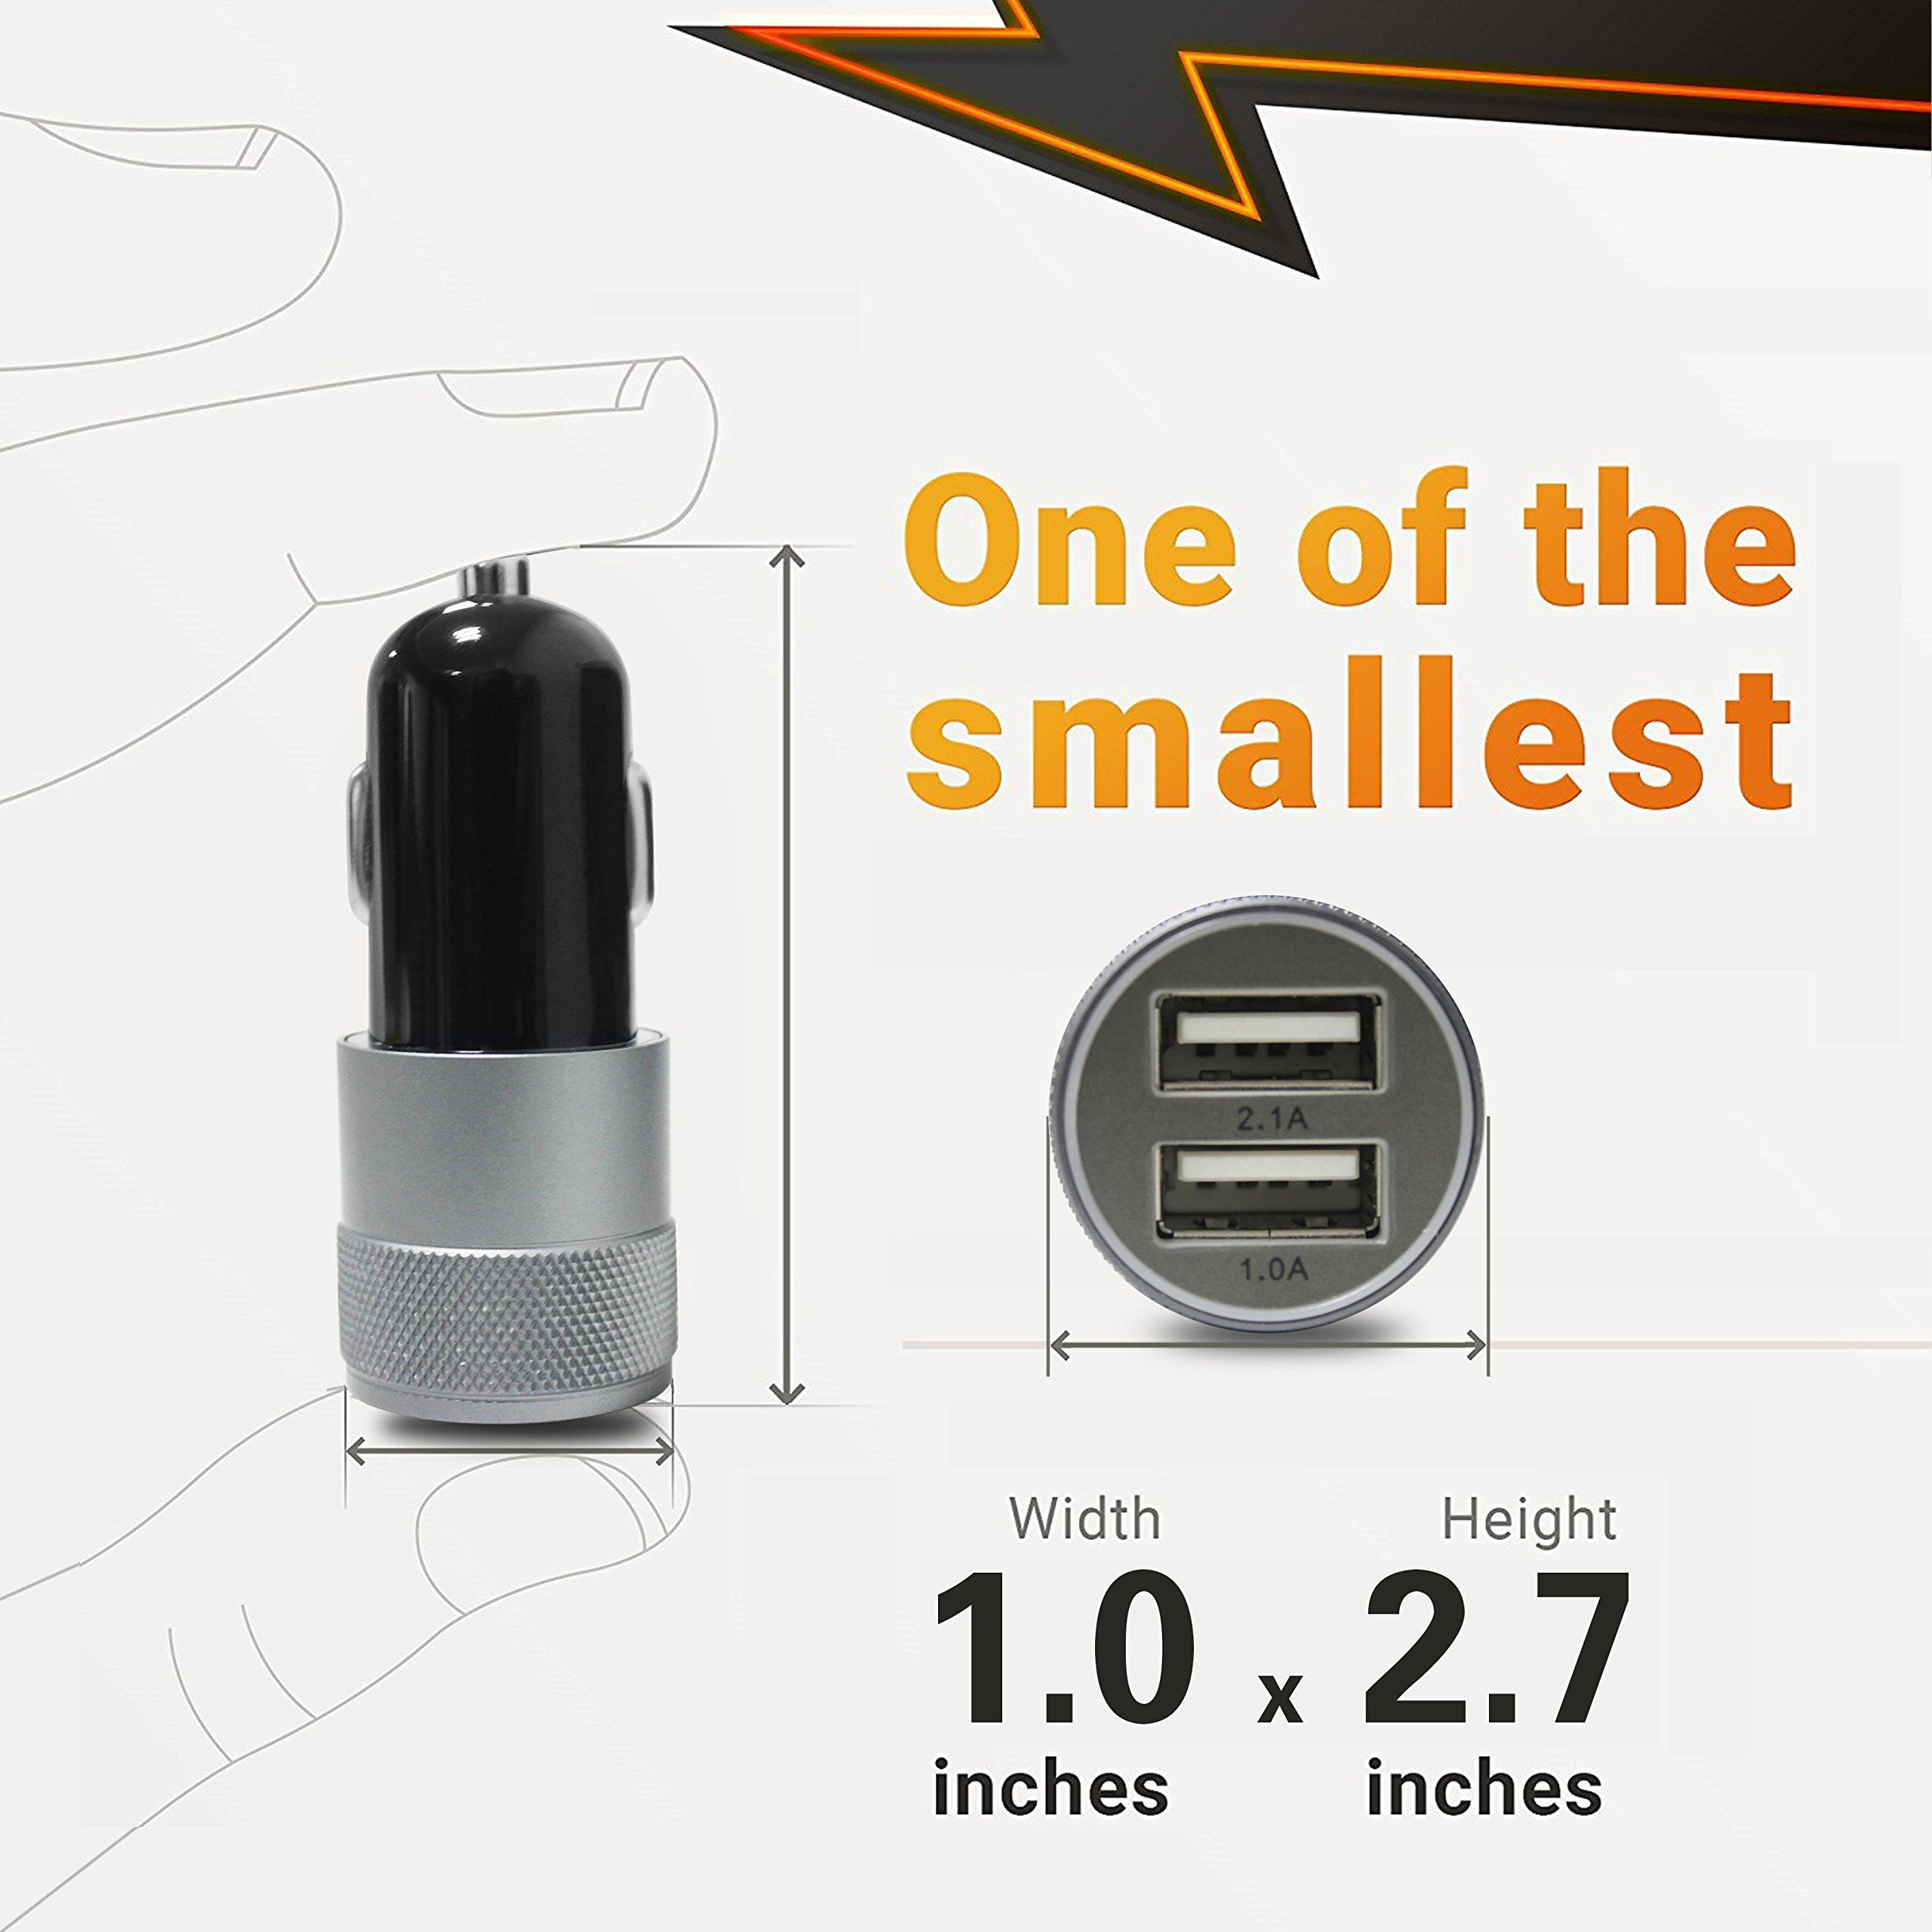 Car Charger 7 Aonear 3.1A Rapid Dual Port Fast USB Car Charger with 6-feet Charging Cable Compatible iPhone X 6s 6s Plus 5S 5 5C SE,Pad and More 8//8 Plus